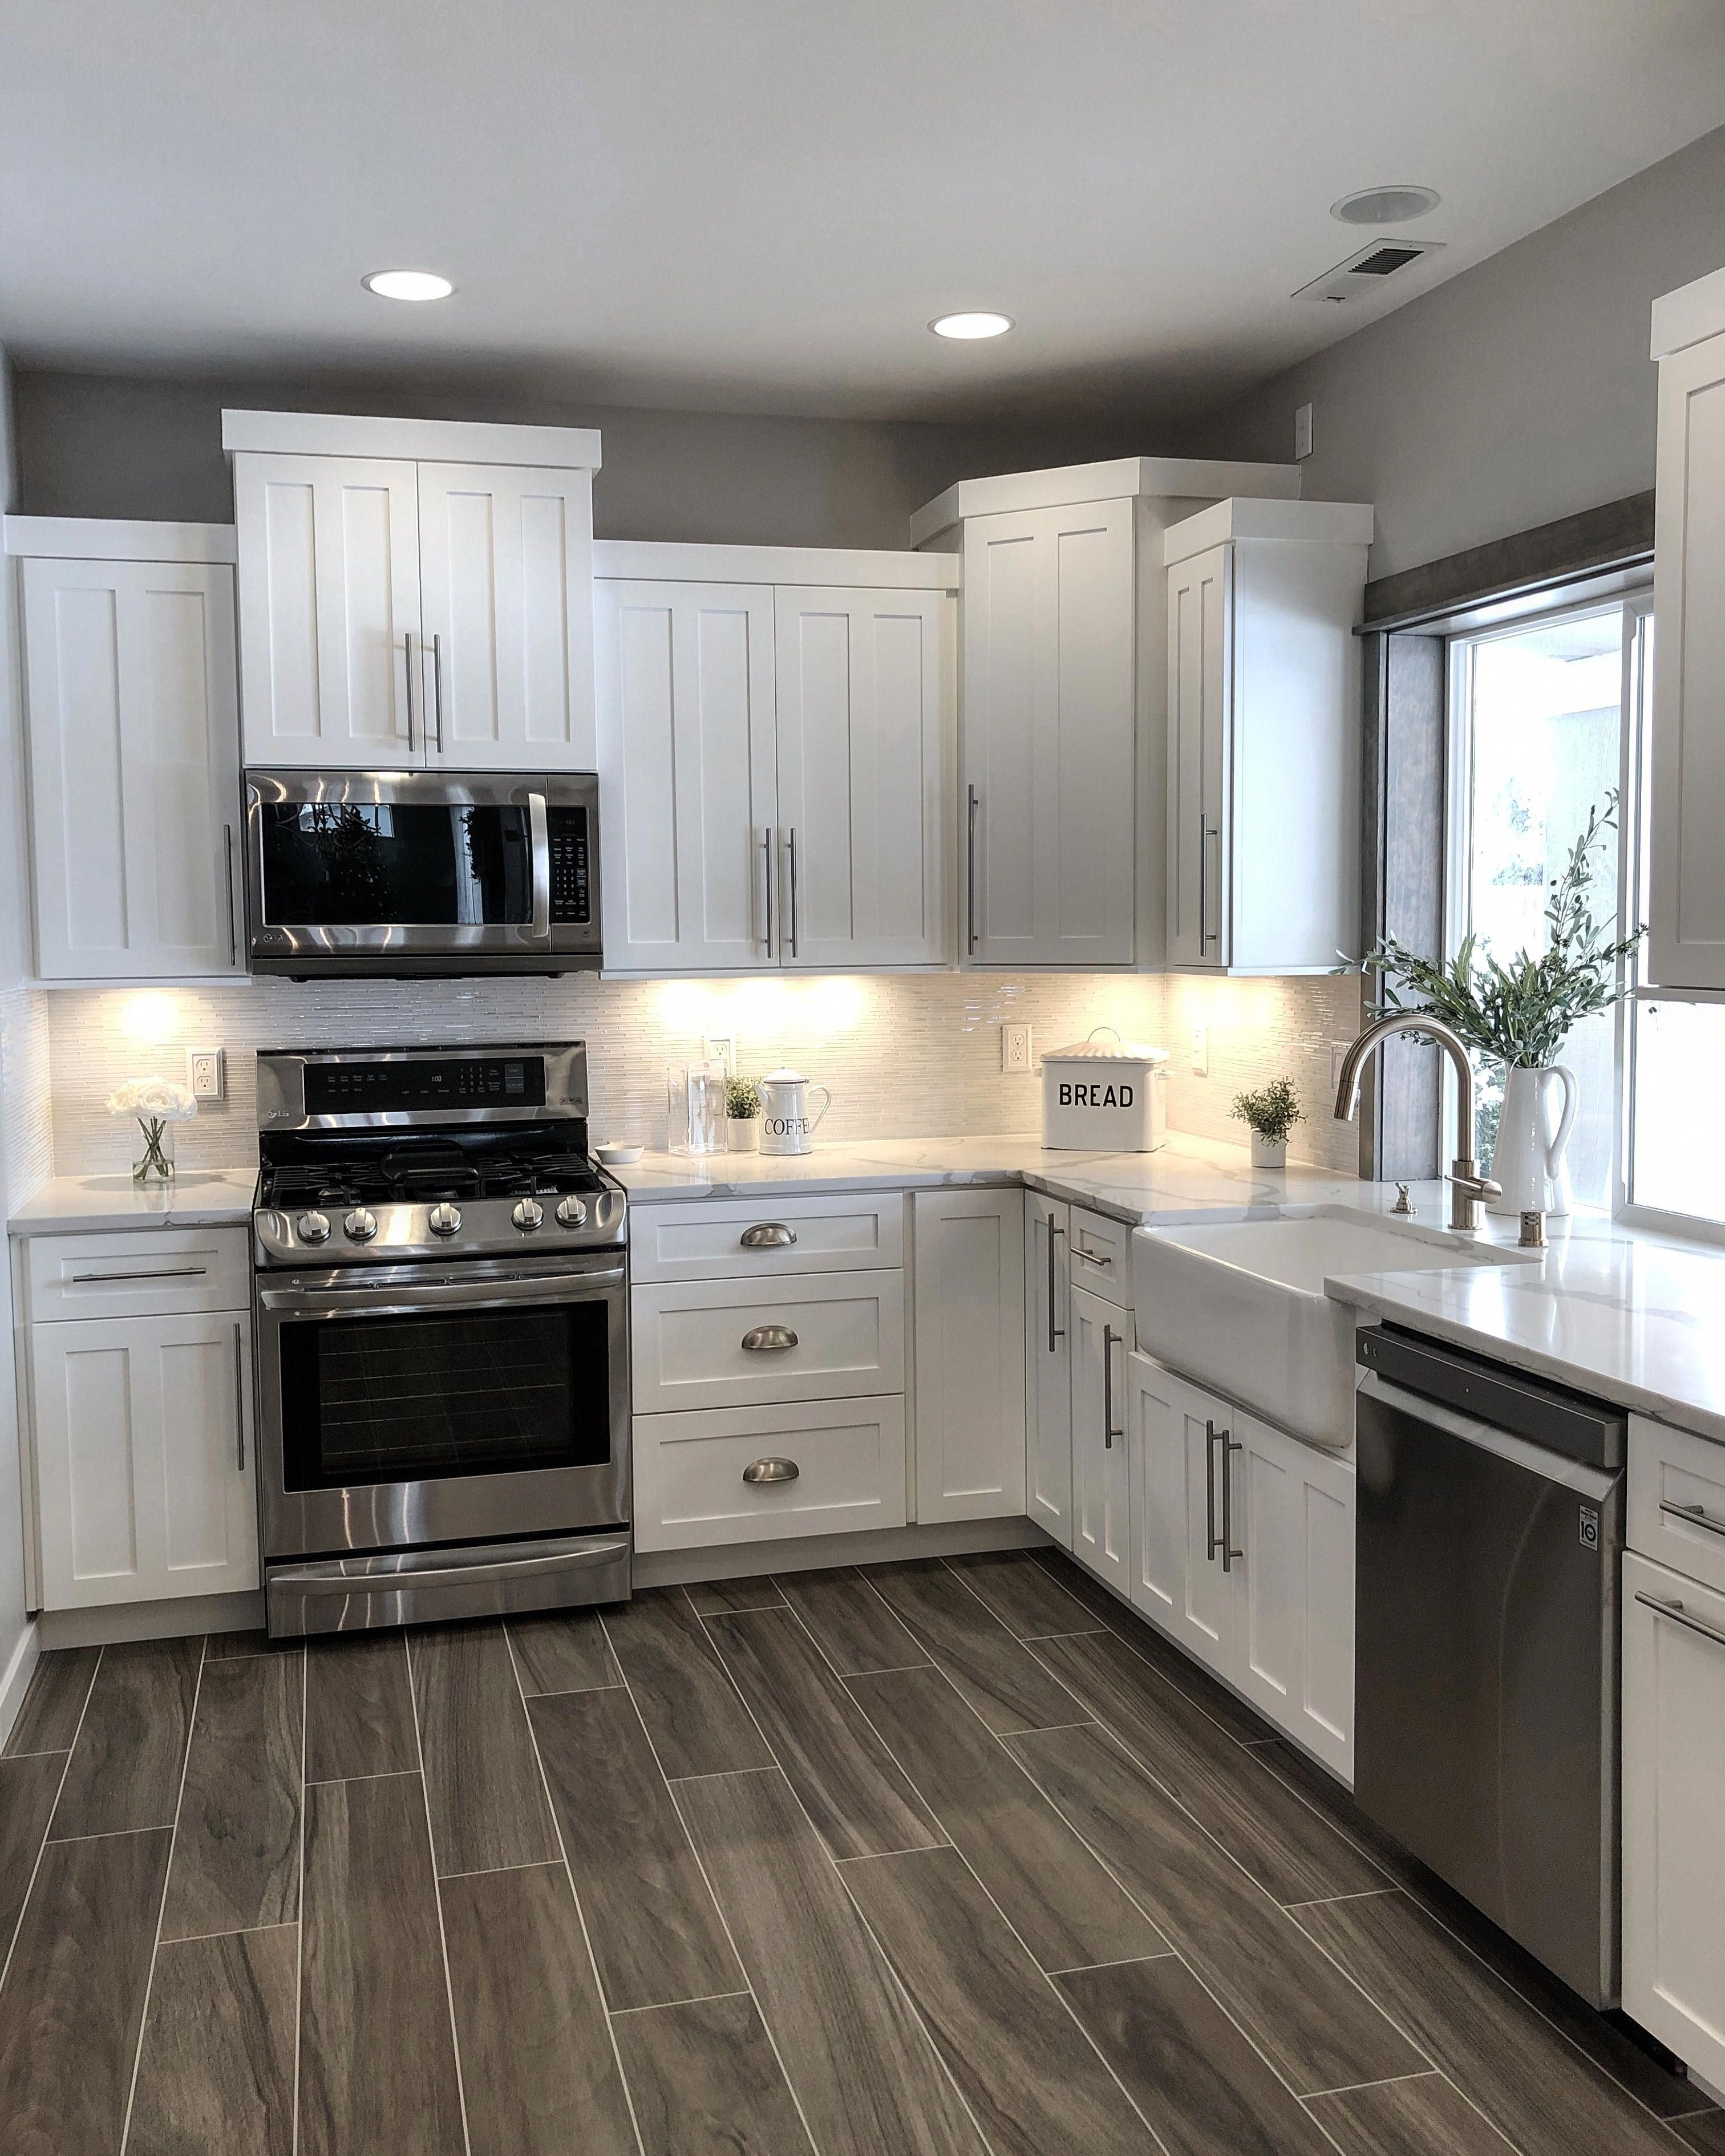 Gray Kitchen Cabinets Gray Is One Of The Most Versatile Kitchen Cabinet Colors Since It Matches A Rang Kitchen Design White Kitchen Design Kitchen Color White